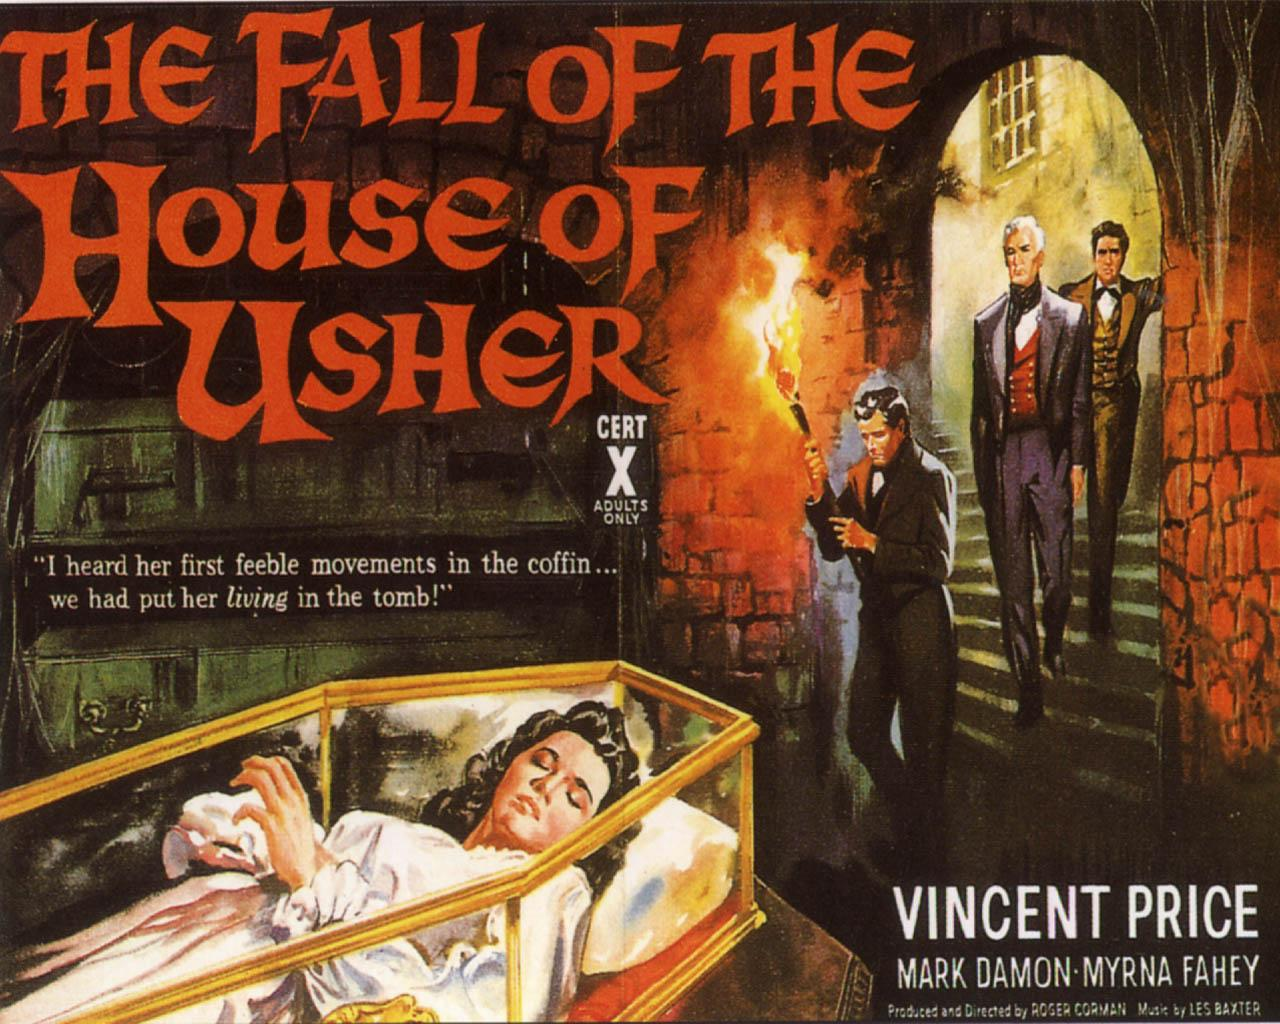 symbolism in the short story the fall of the house of usher by edgar allan poe The major symbolism is the house itself as a symbol for the usher family a family line from its ancestors to its descendants was commonly known as one similarity is the fact that the story concerns the end of a family bloodline there are no descendants to carry on the usher family name.